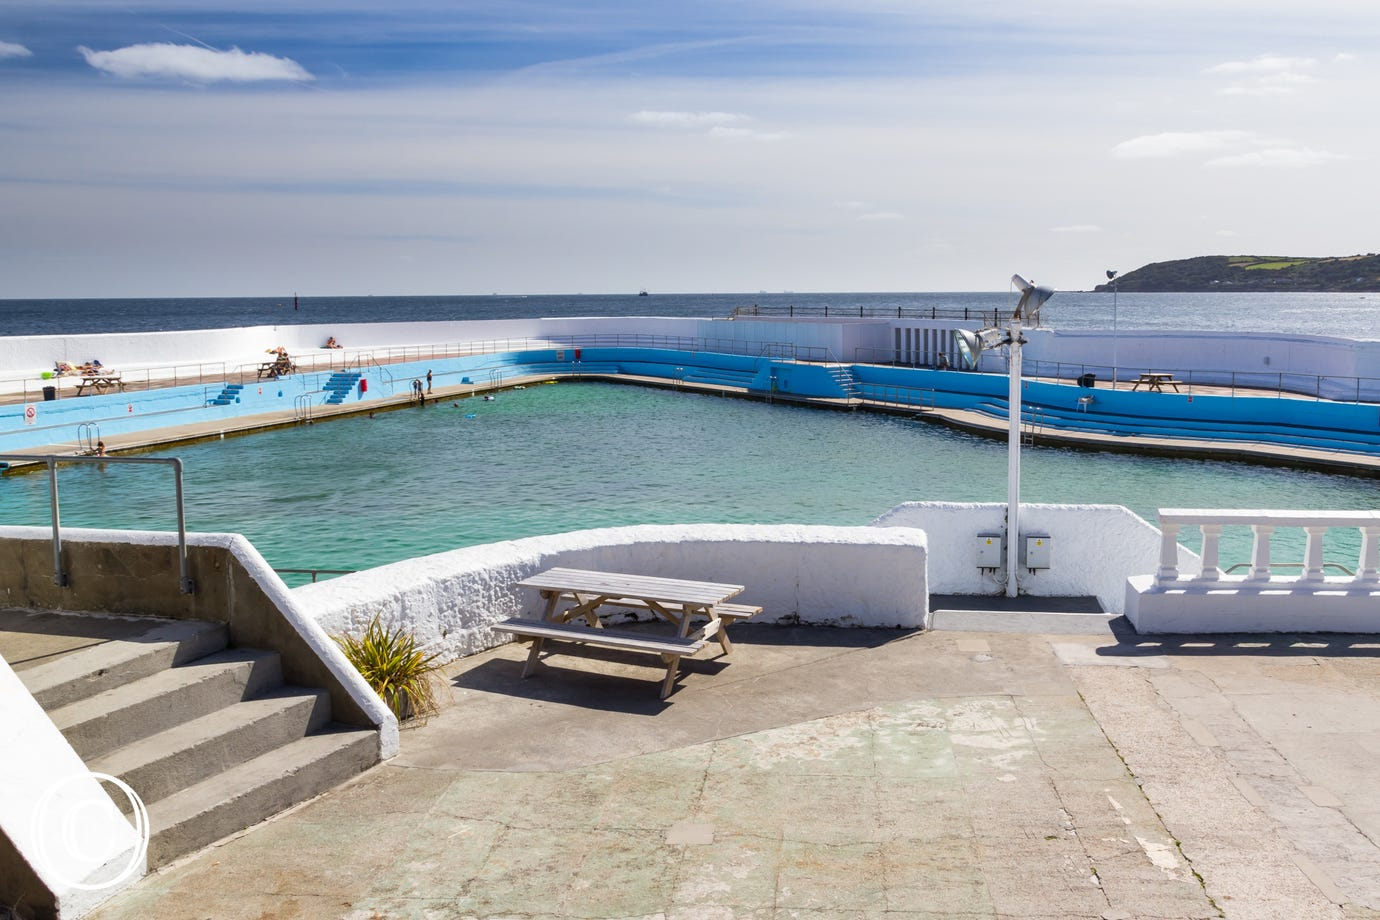 The Jubilee Pool at Penzance